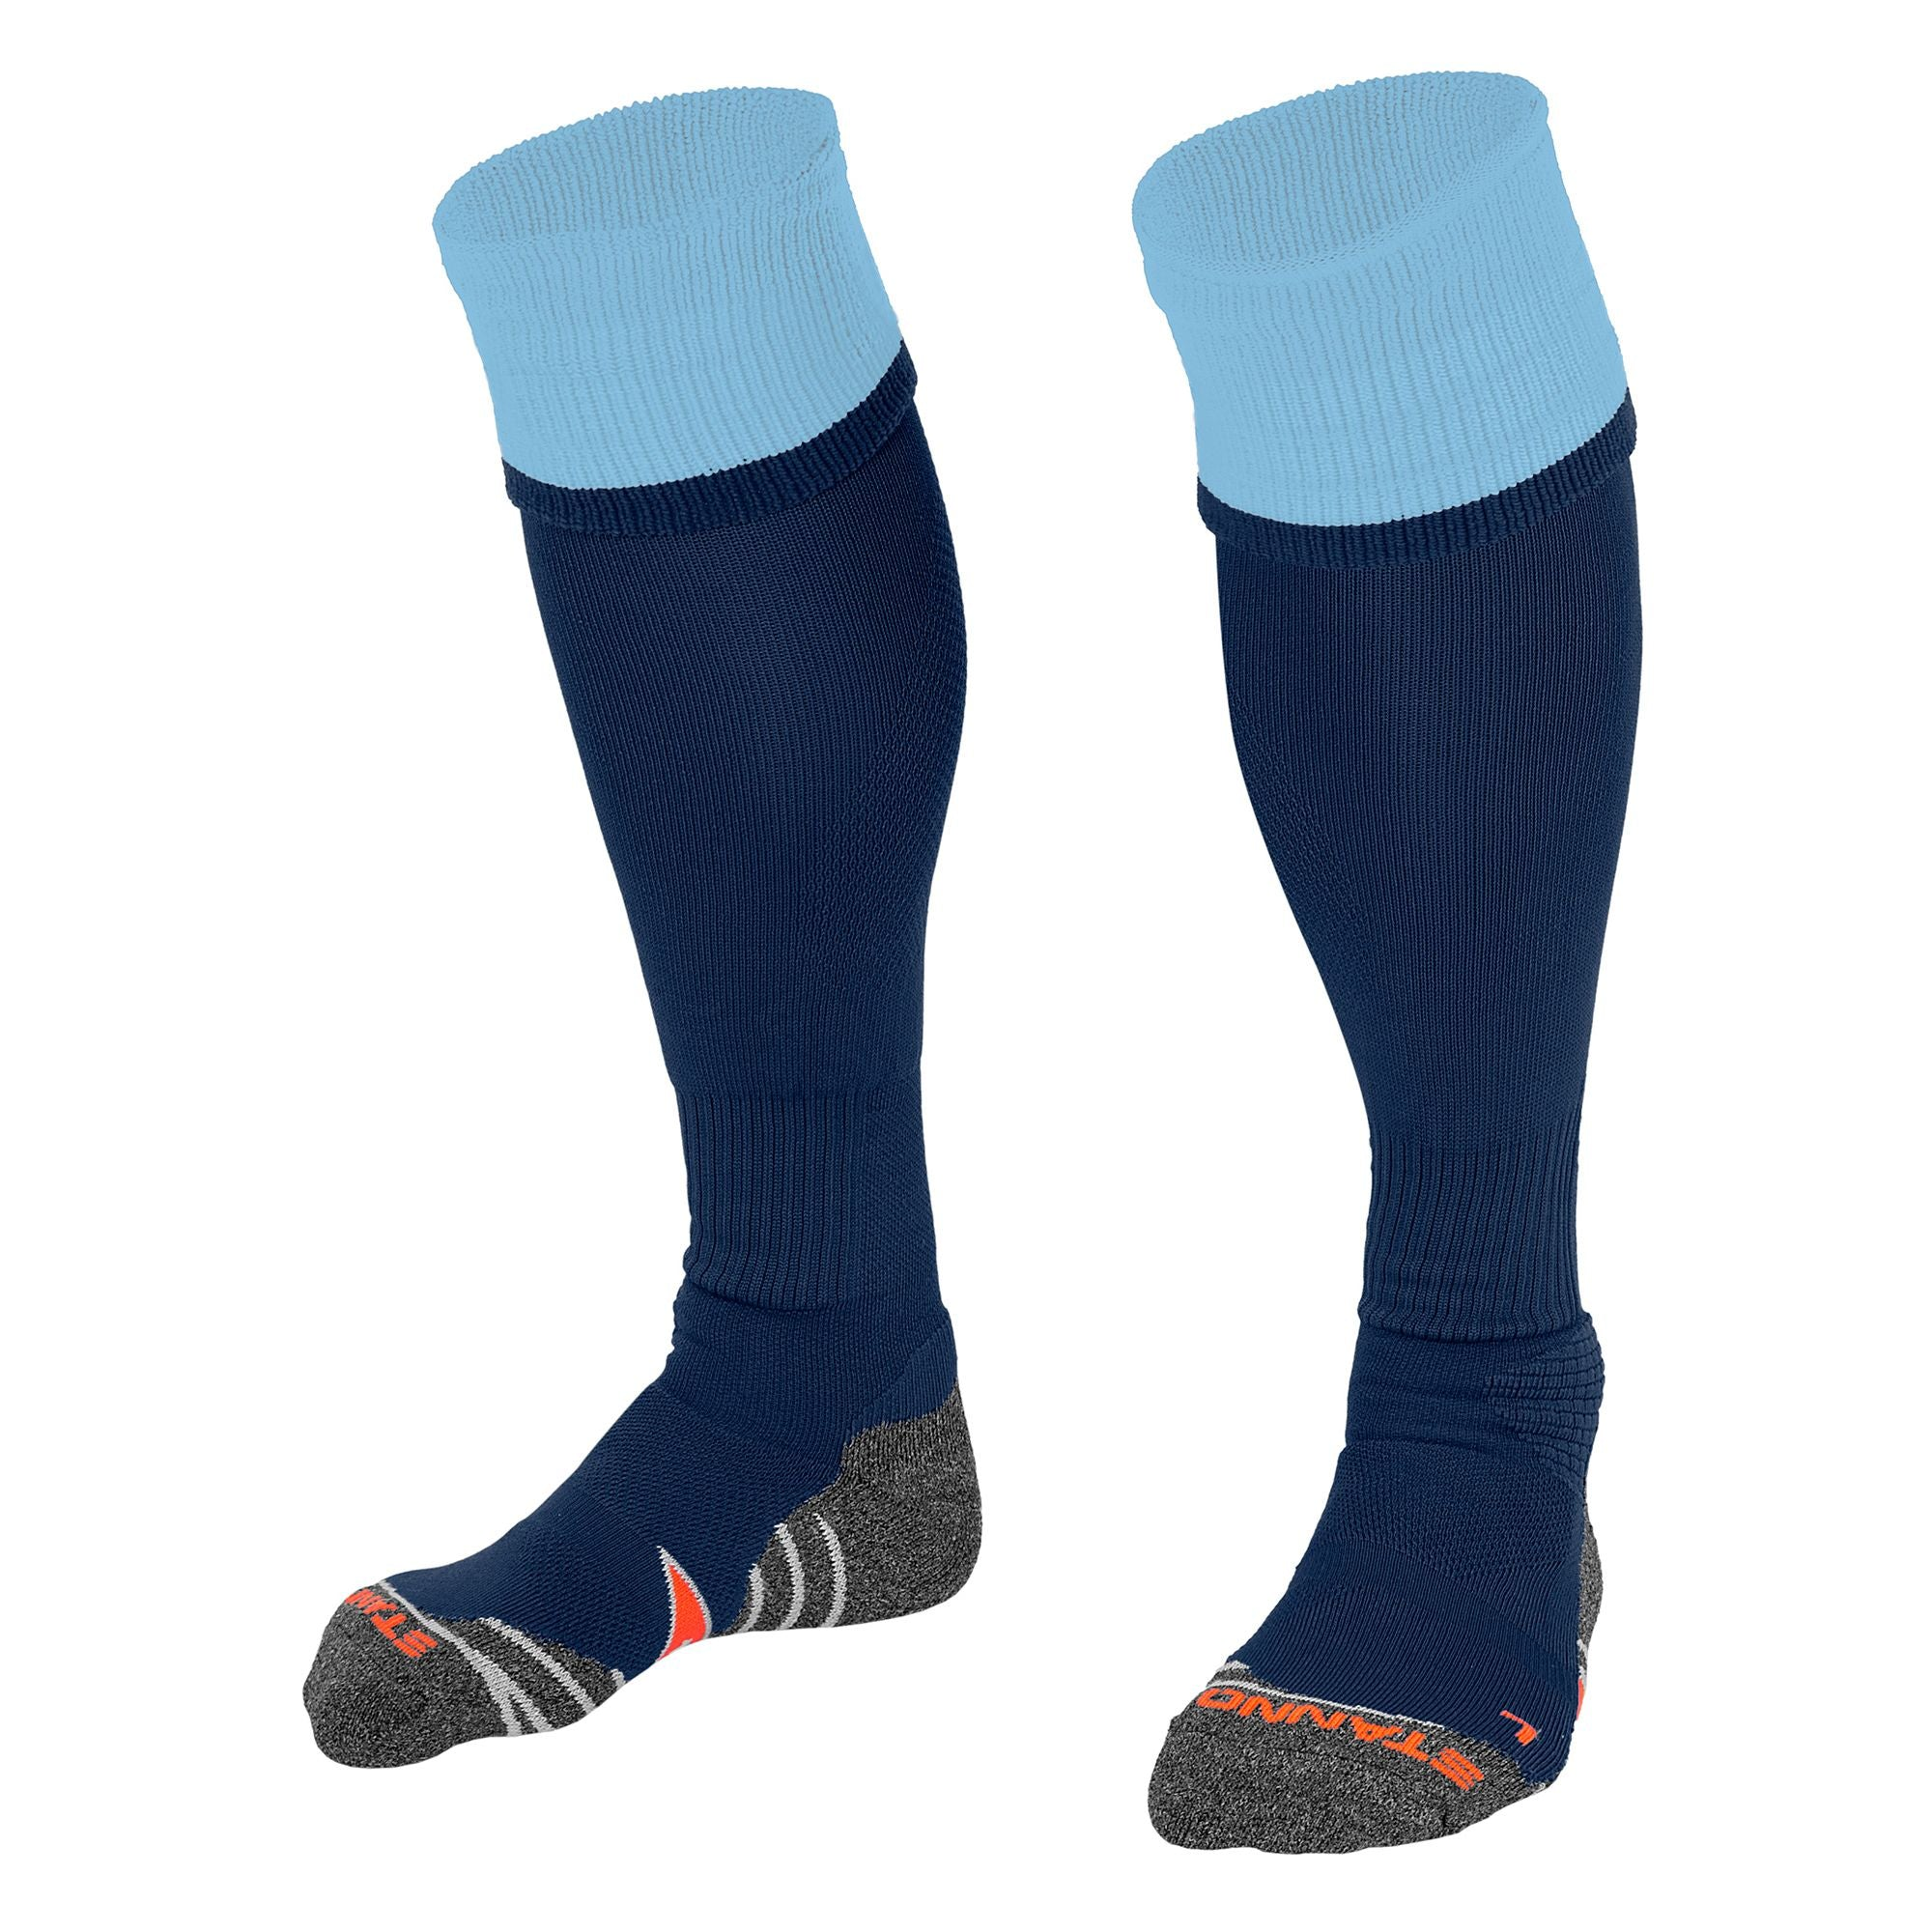 Stanno Combi Sock in navy with sky blue contrast tops